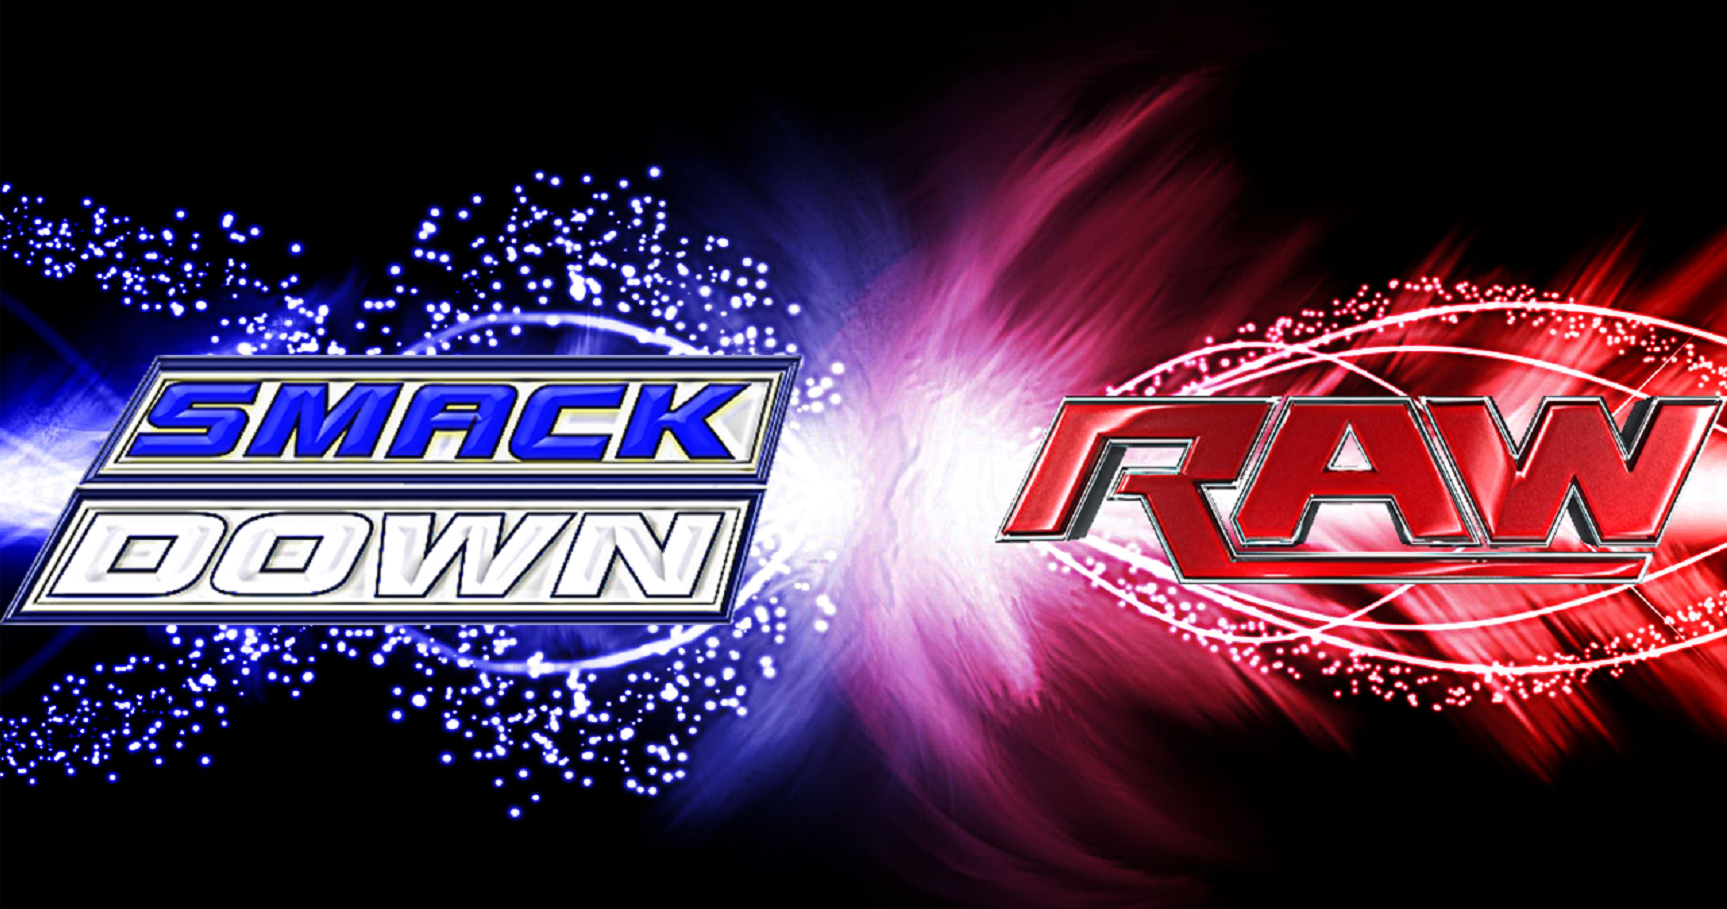 Roster WWE Raw et Smackdown  dans Dernières M.A.J WWE-SmackDown-VS-Raw-HD-Wallpapers0